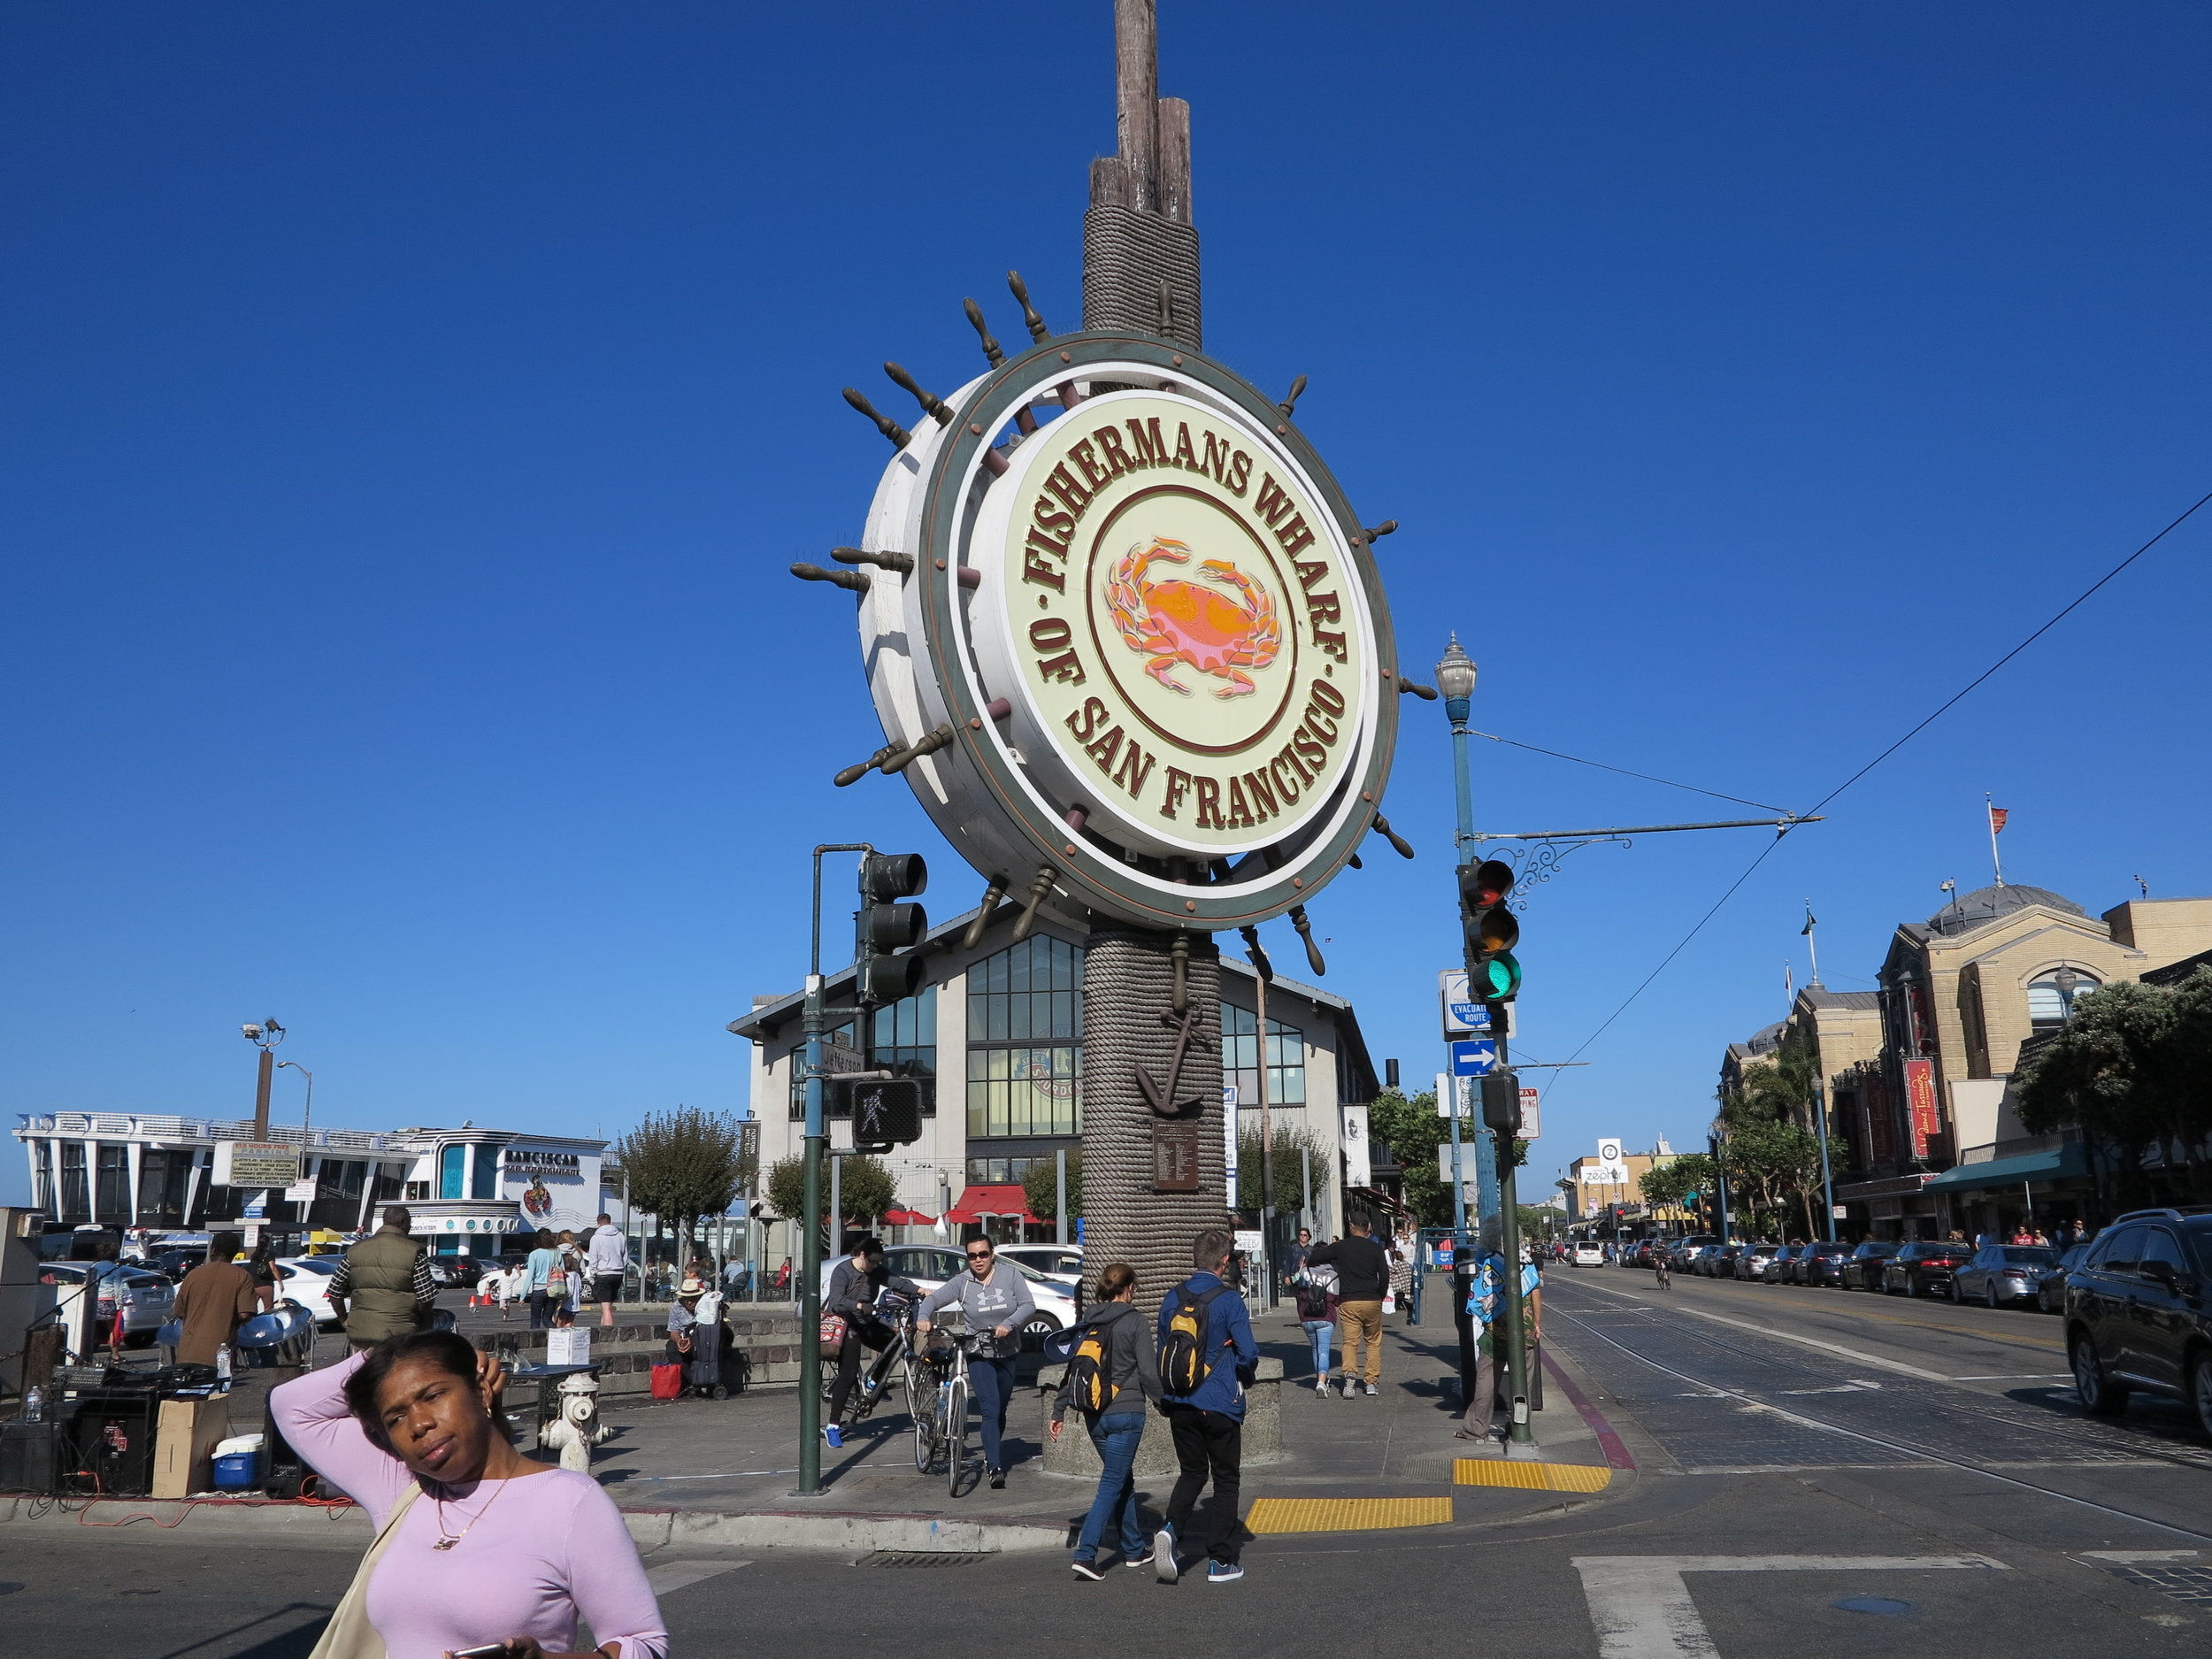 We stopped for some food at The Franciscan at Fishermans Wharf and had a few drinks and some appetizers.